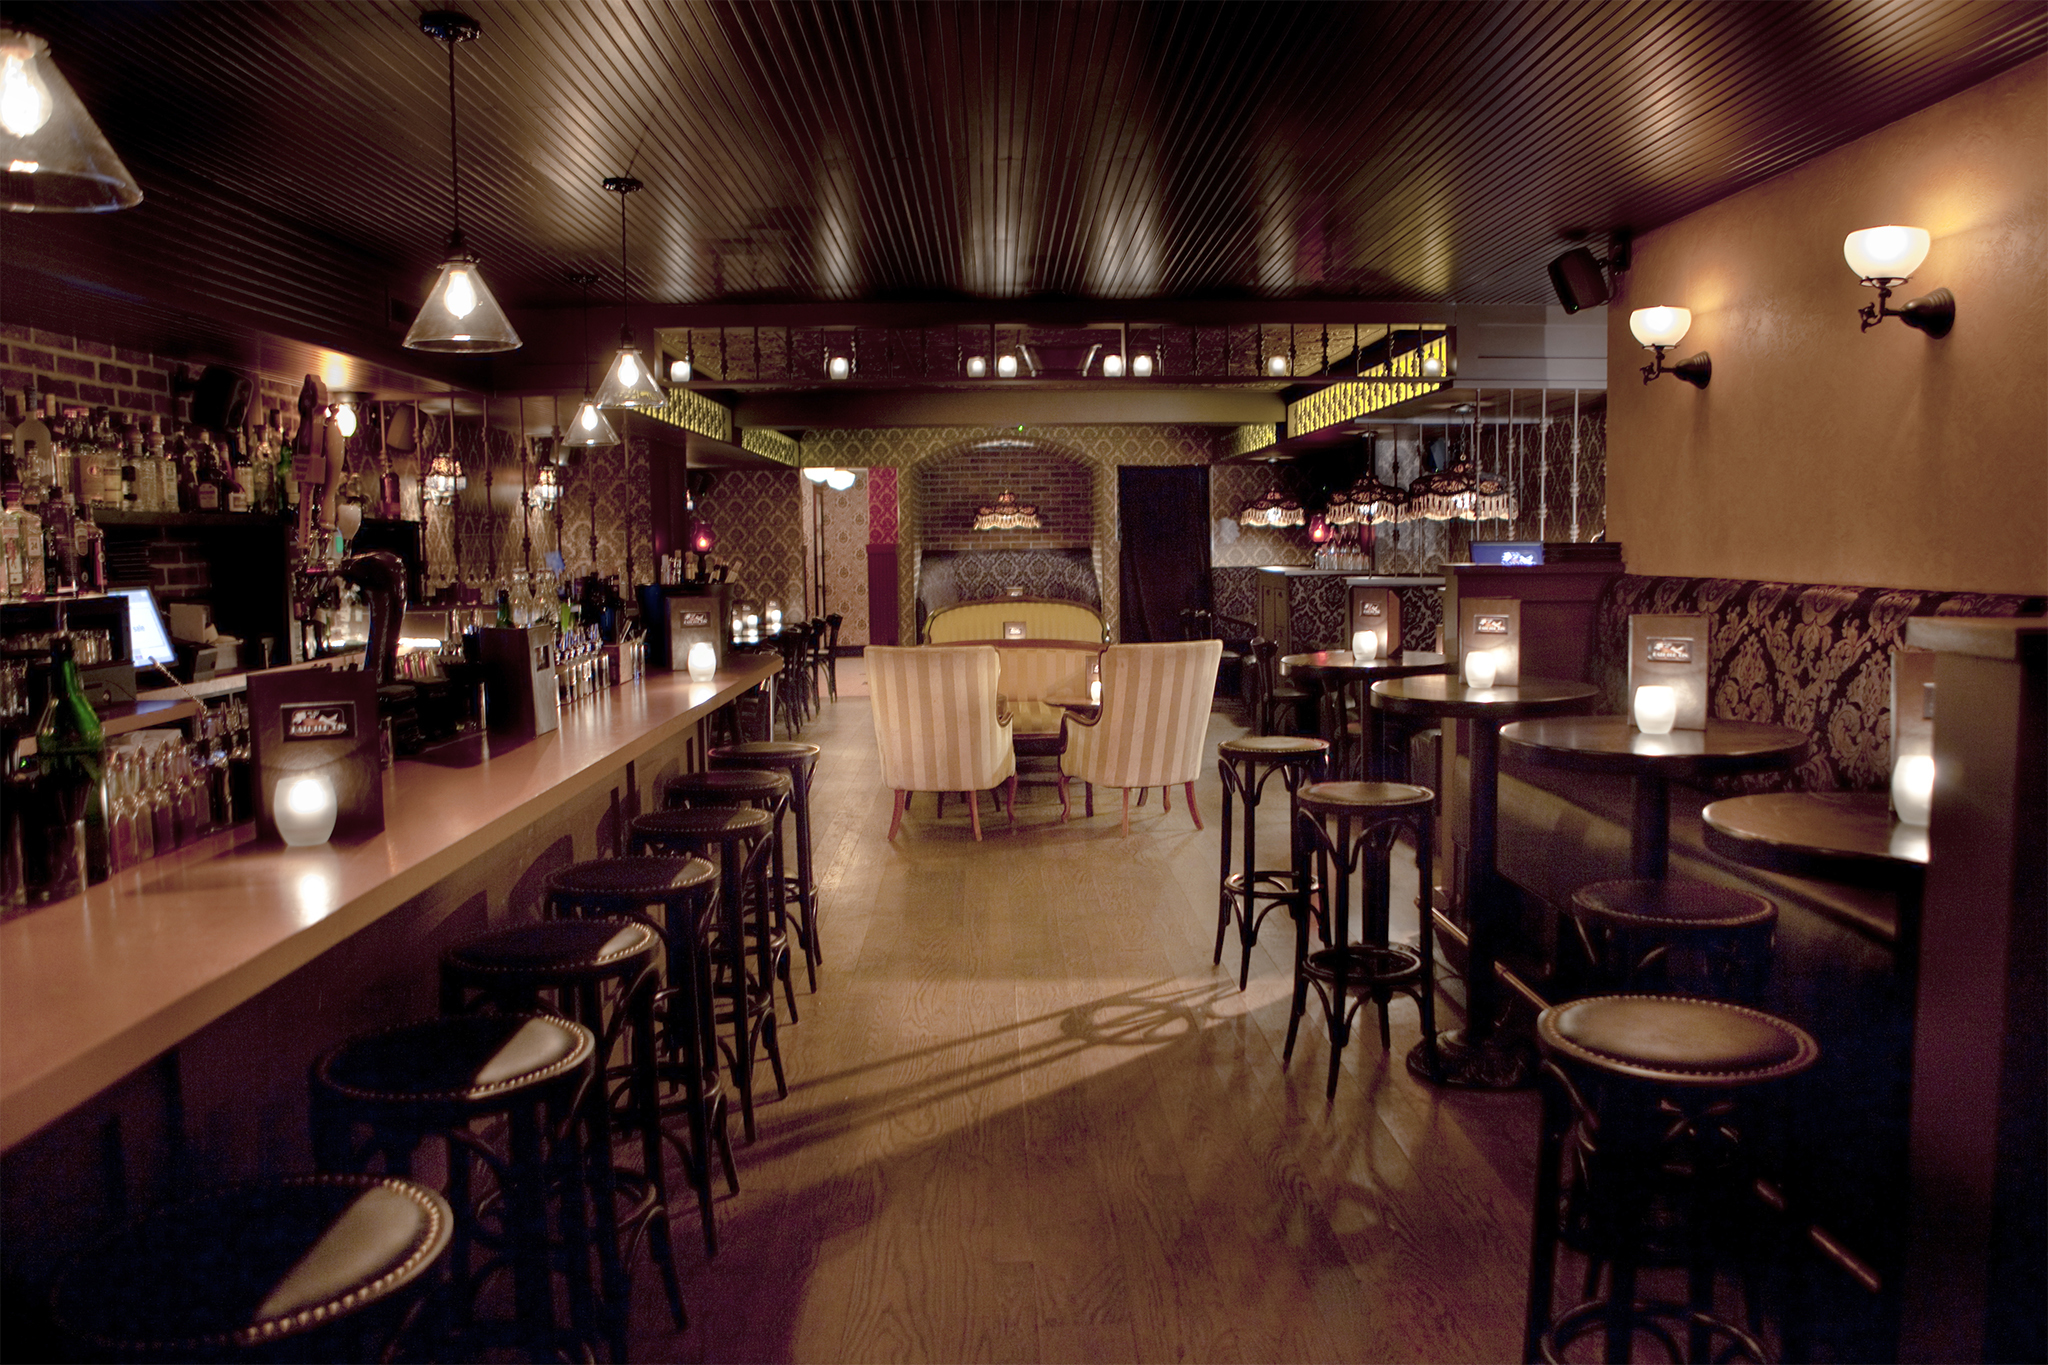 Speakeasy NYC The Best Hidden Bars And Restaurants In NYC